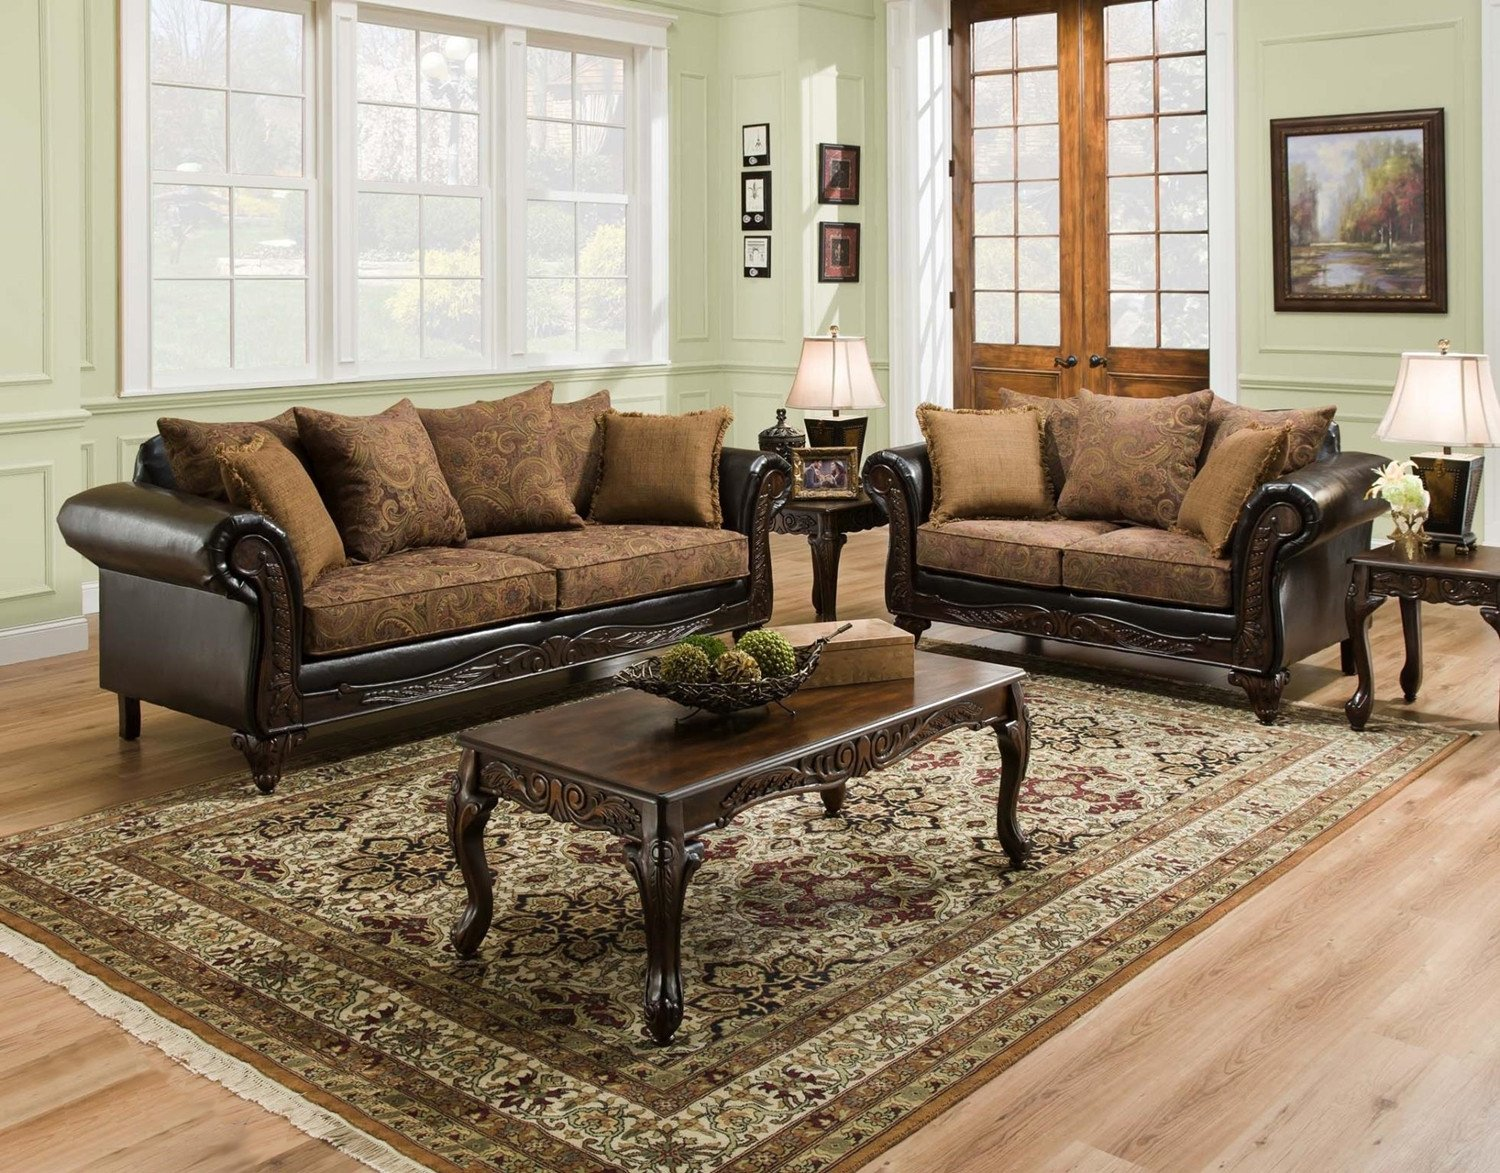 Traditional Living Room Sets Elegant San Marino Traditional Living Room Furniture Set W Wood Trim & Accent Pillows